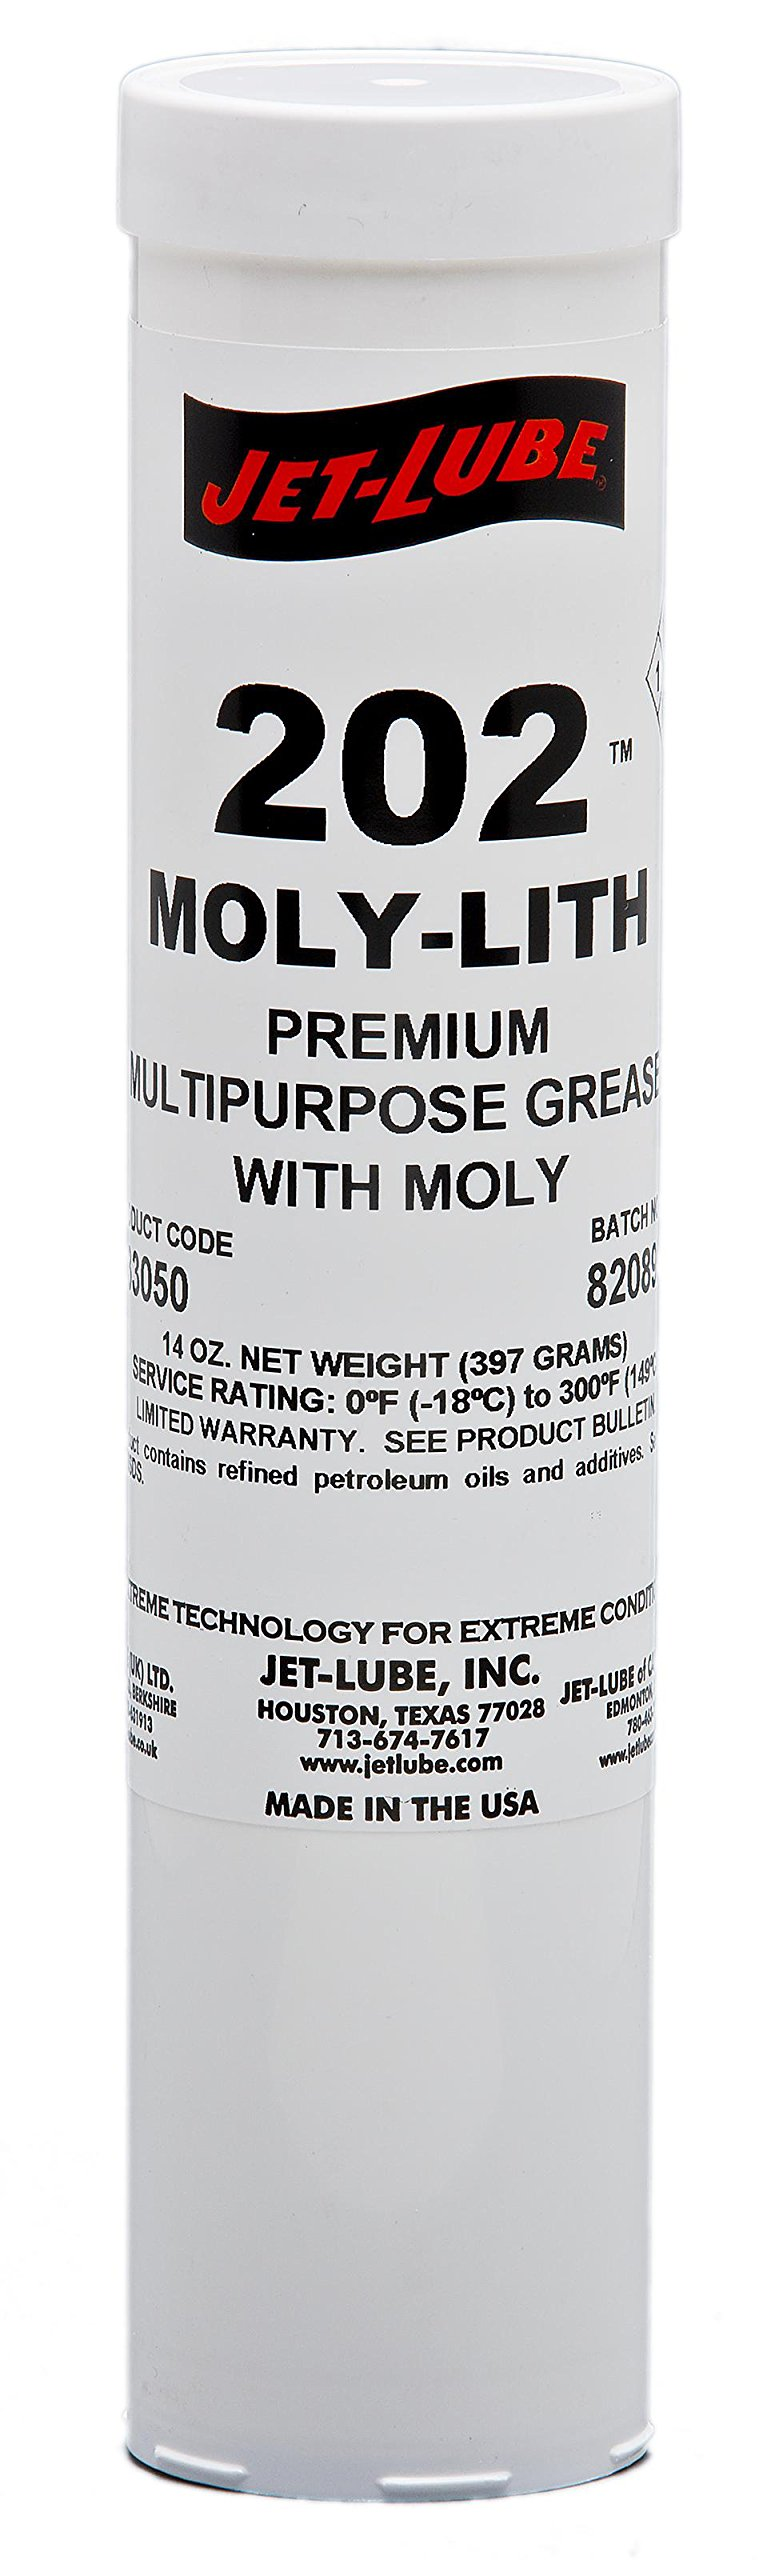 Jet-Lube 33050 #202 Moly-Lith Grease, 0 to 300 degrees F, 2 NLGI Number, 14 oz Cartridge, Black by Jet-Lube